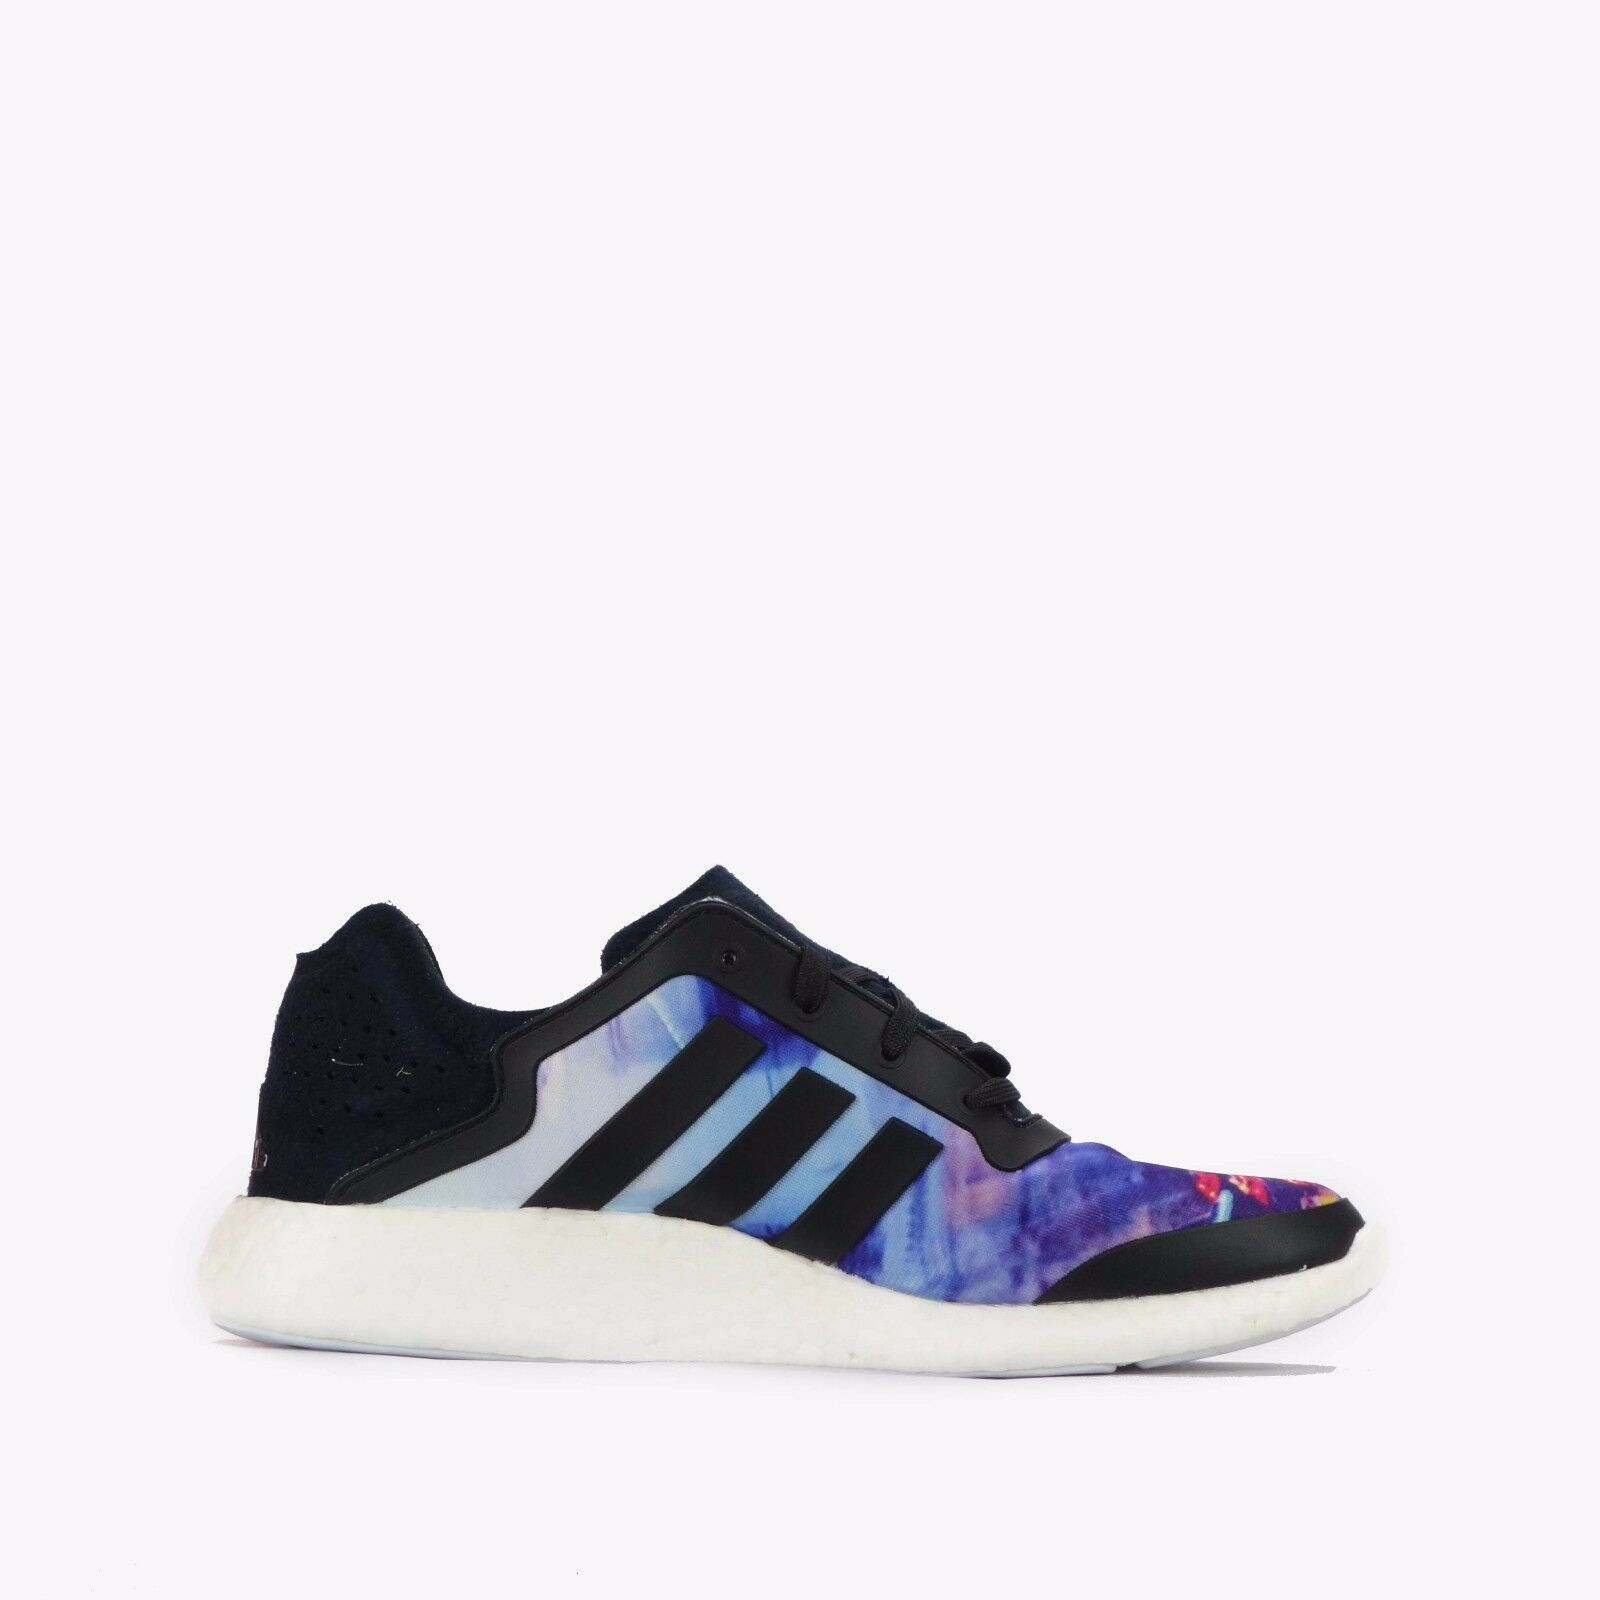 Bdidas Pure Boost Women's Running Shoes Black/Multi Colour